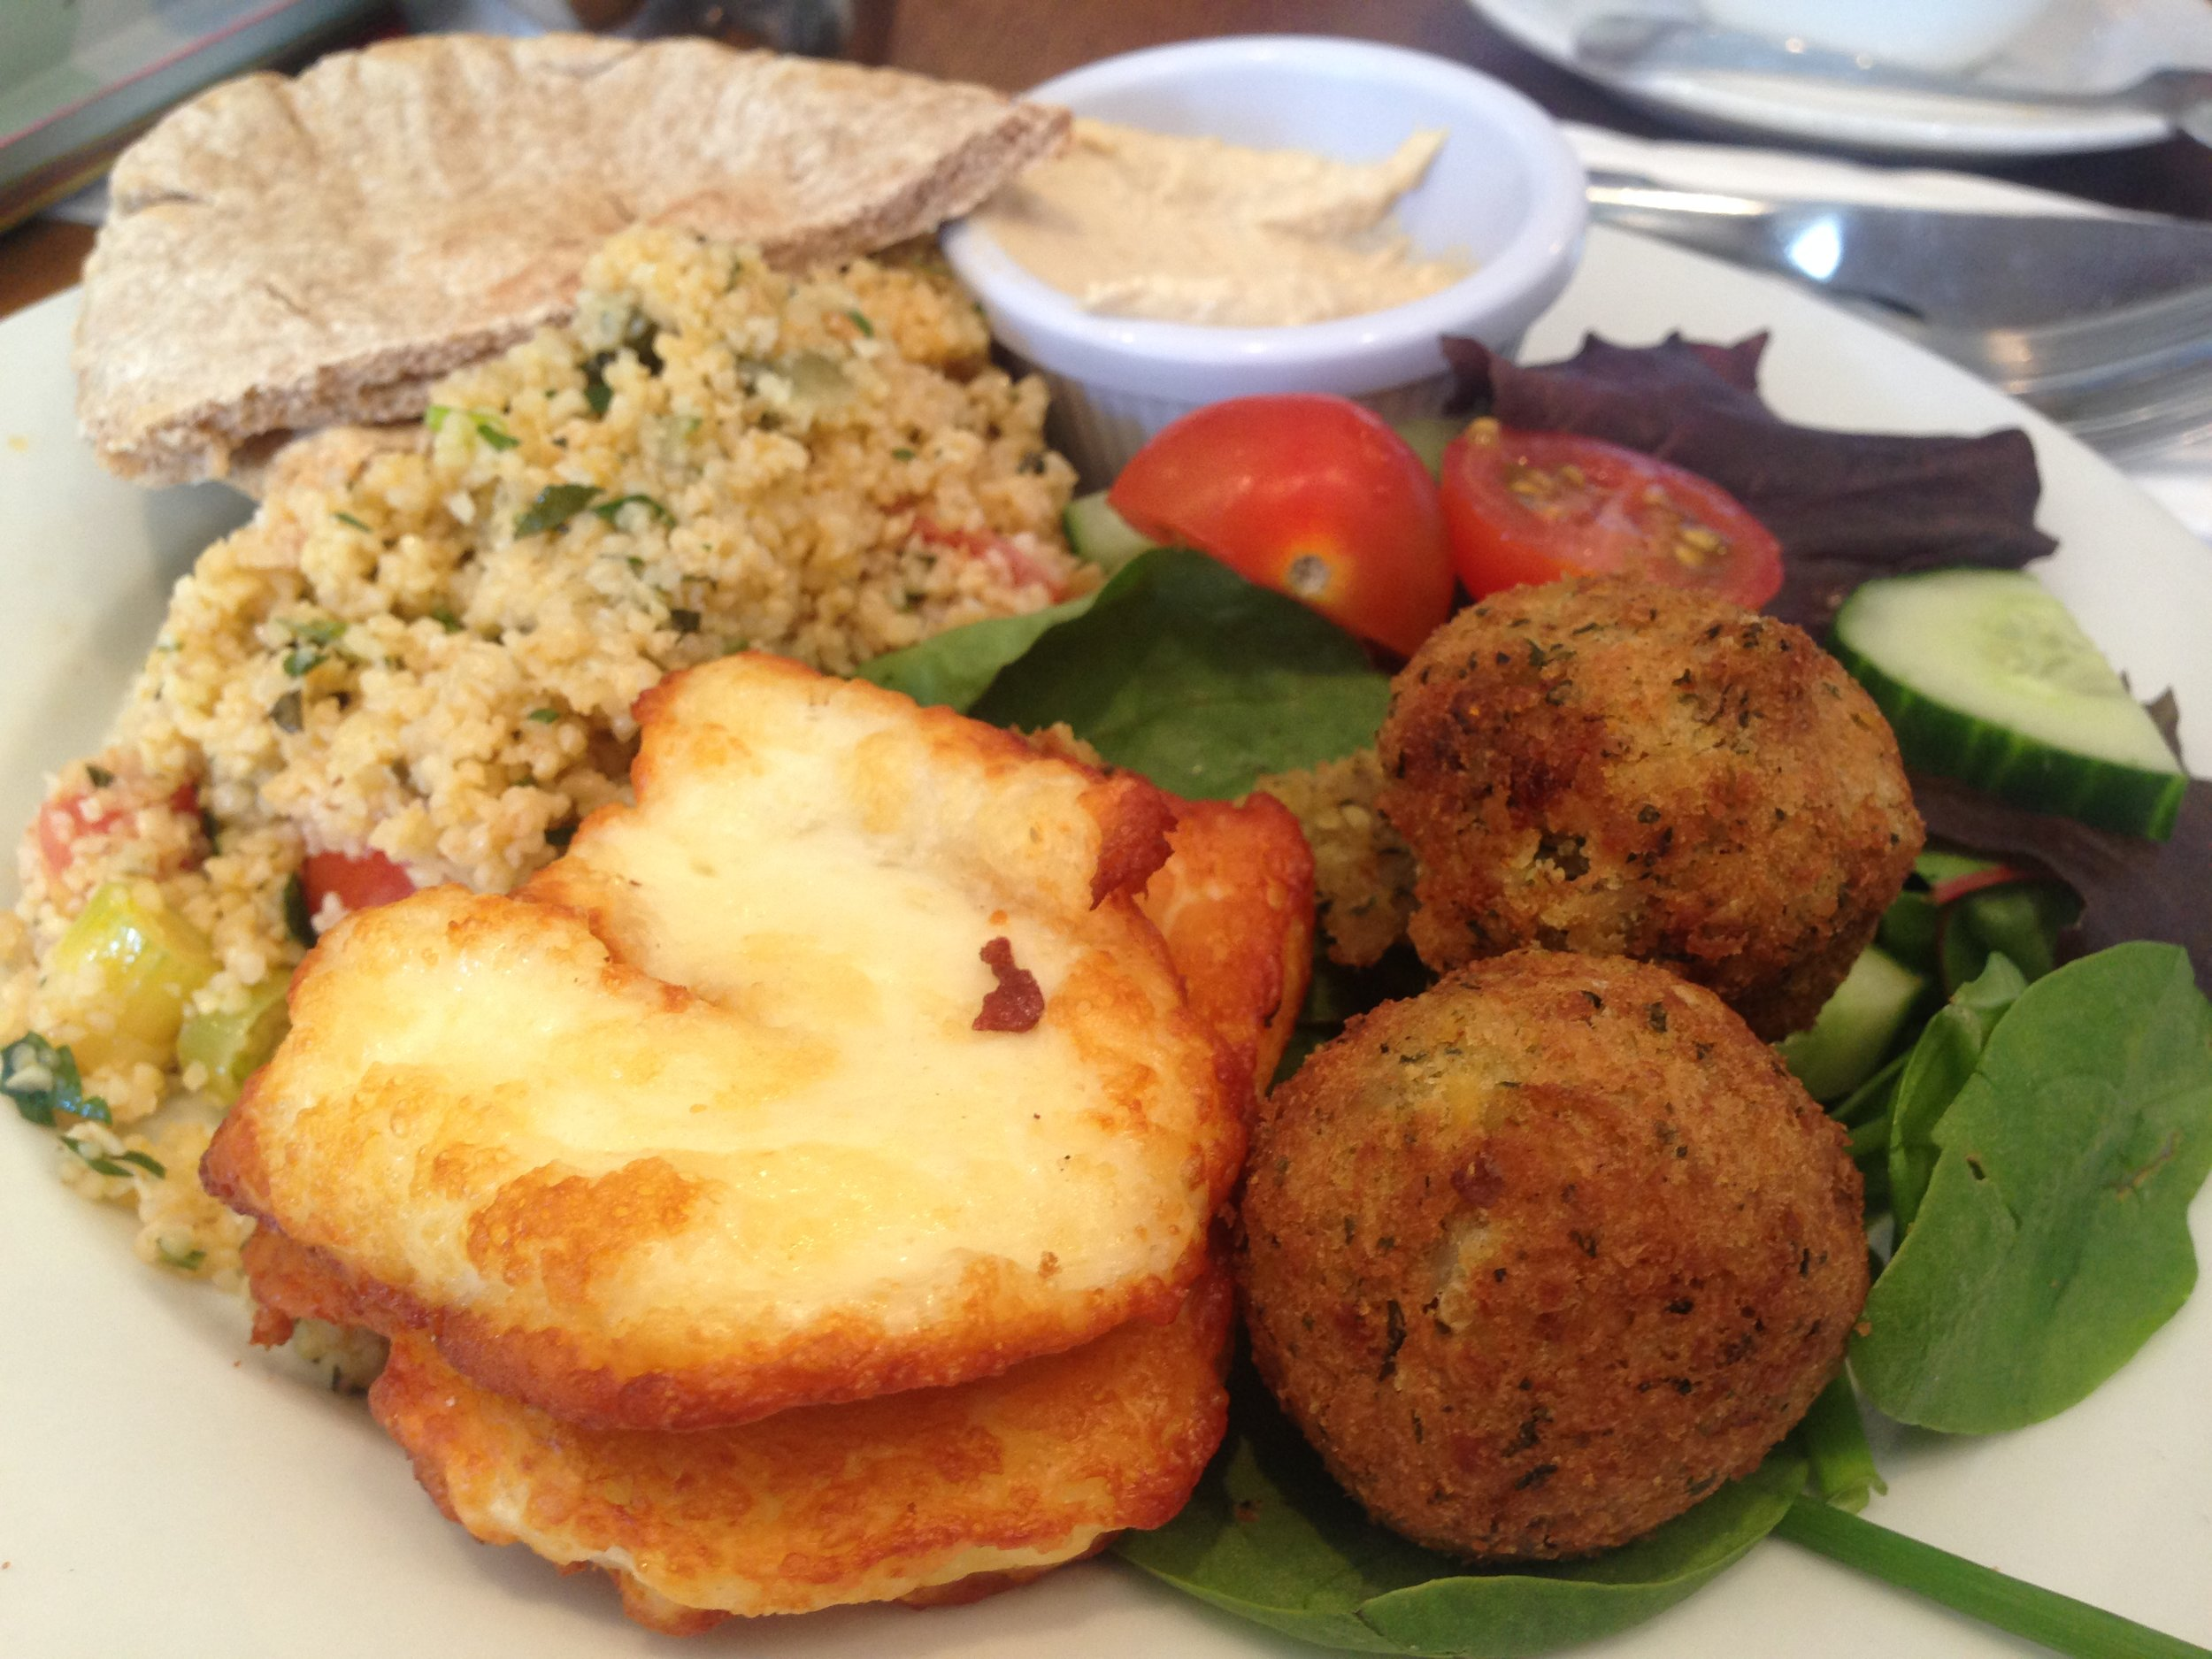 Taboulleh salad platter at The Brockley Mess